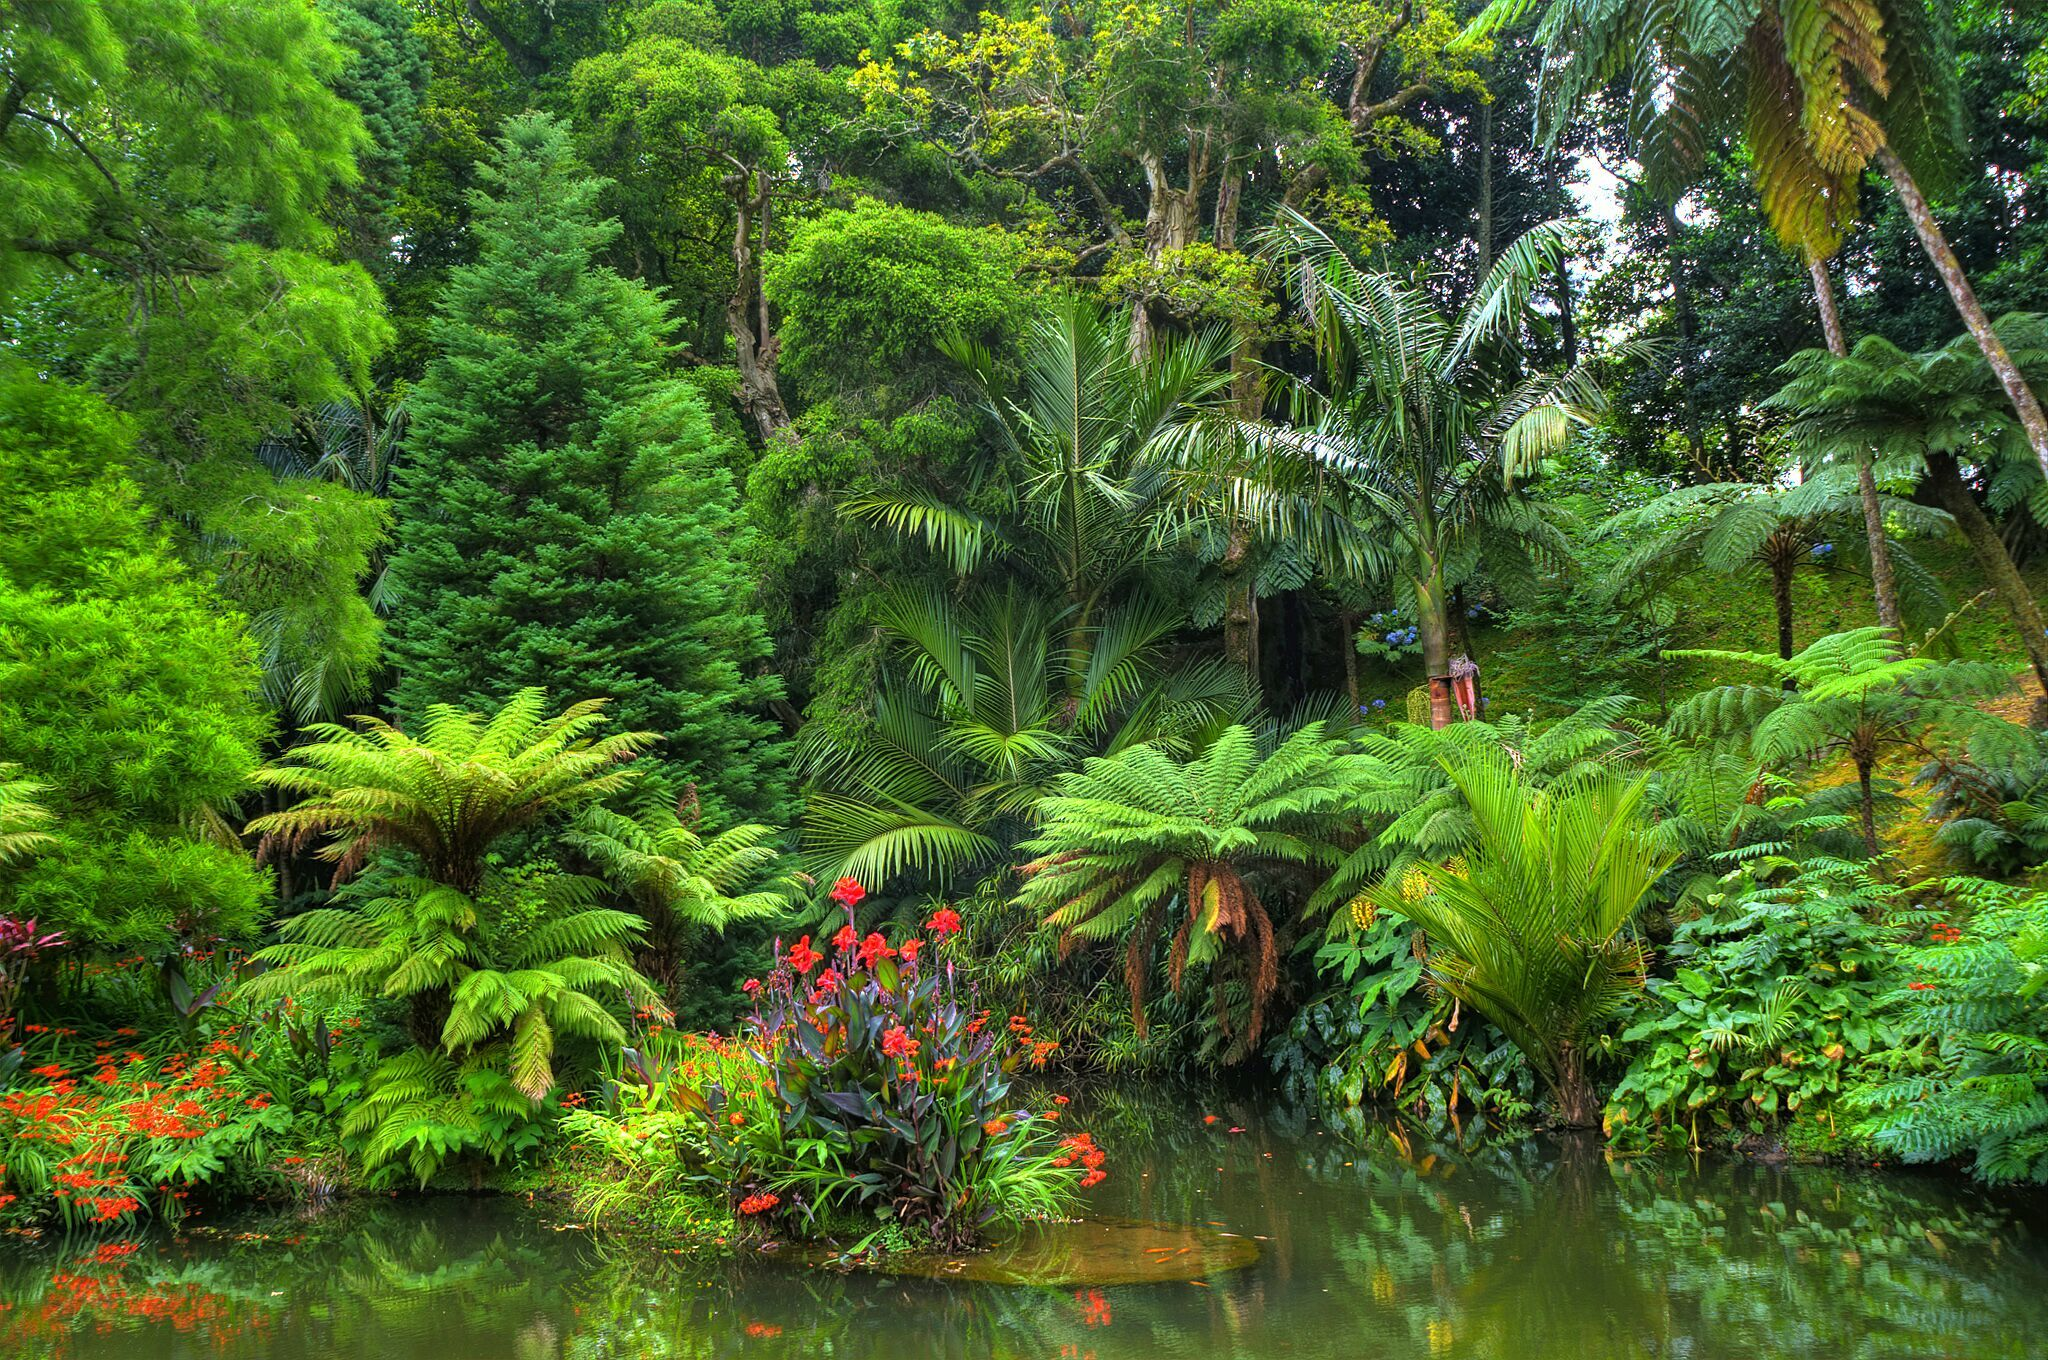 Pond In Tropical Forest Fondo De Pantalla Hd Fondo De